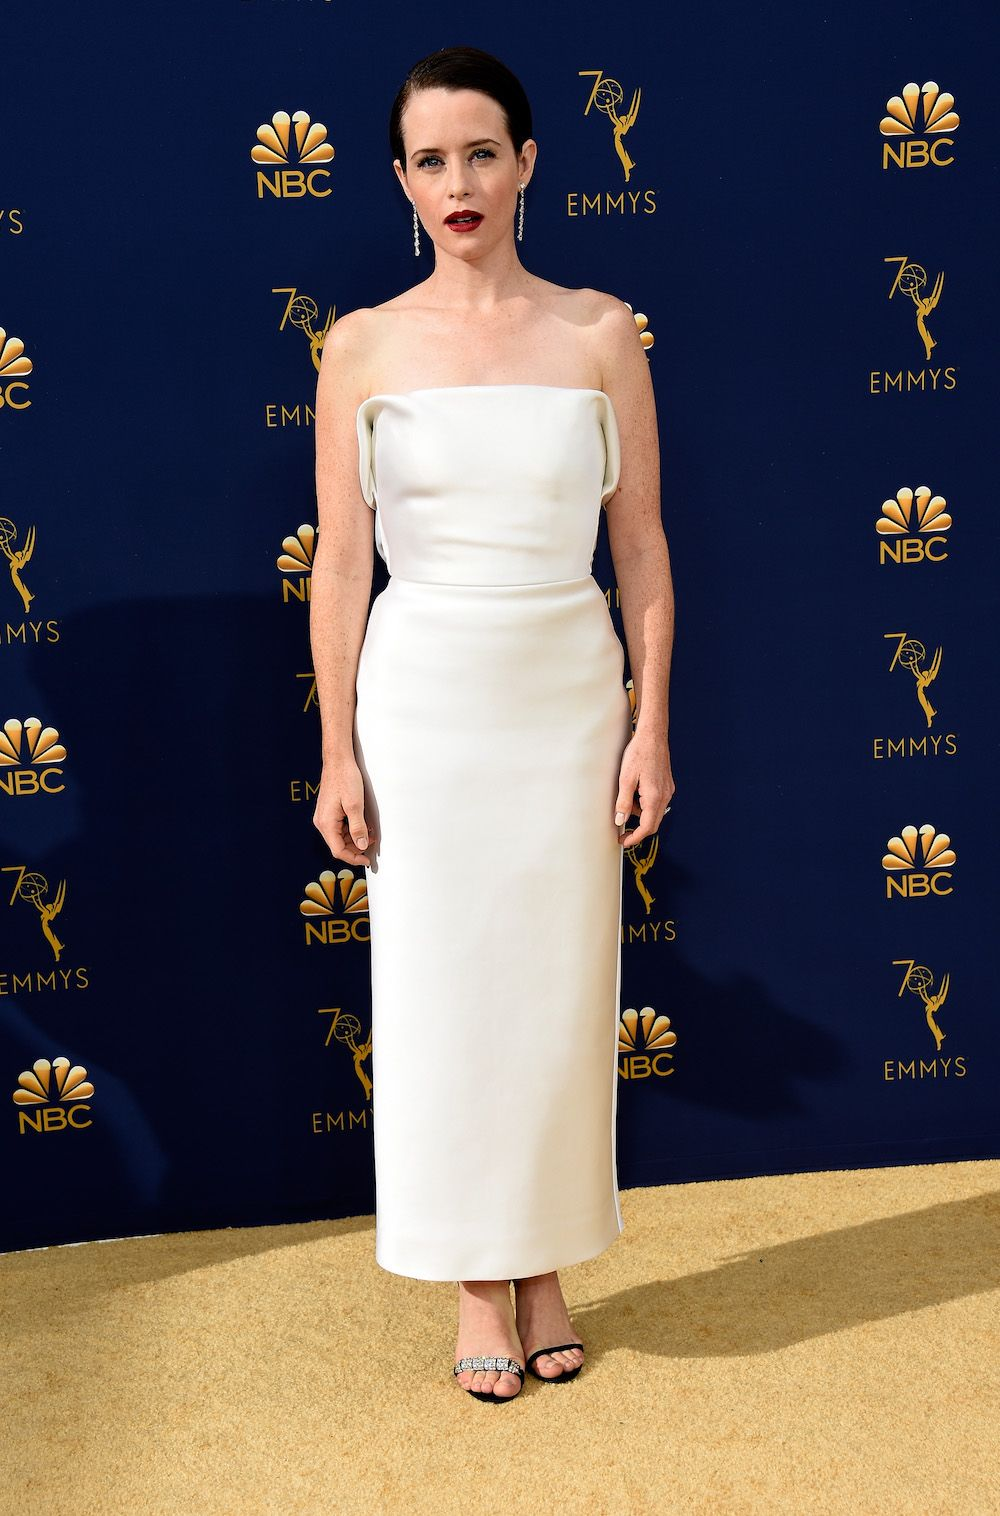 emmy-awards-2018-rode-loper